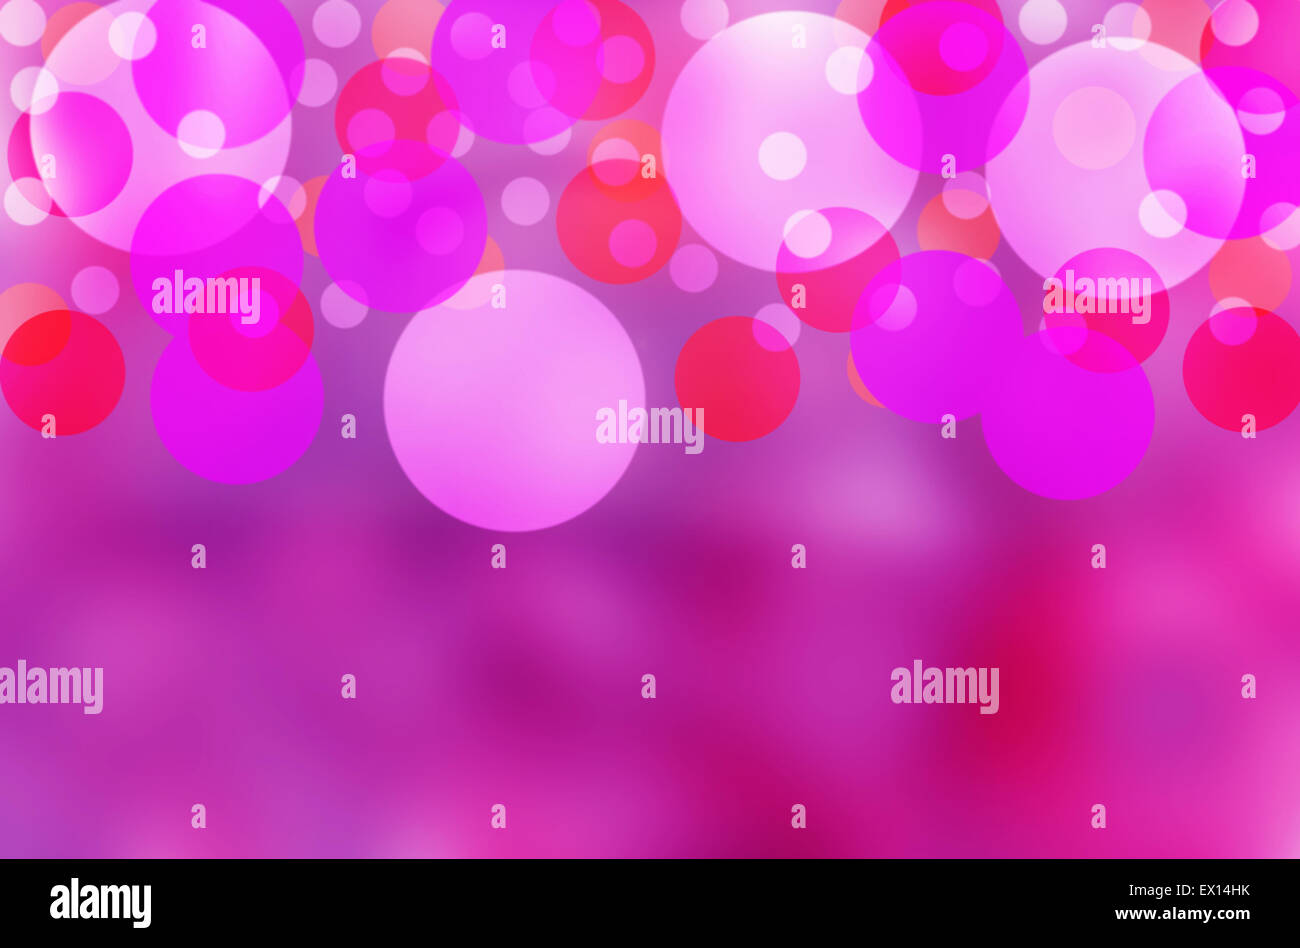 Beautiful bubbles effect illustration  showing a vibrant purple background - Stock Image